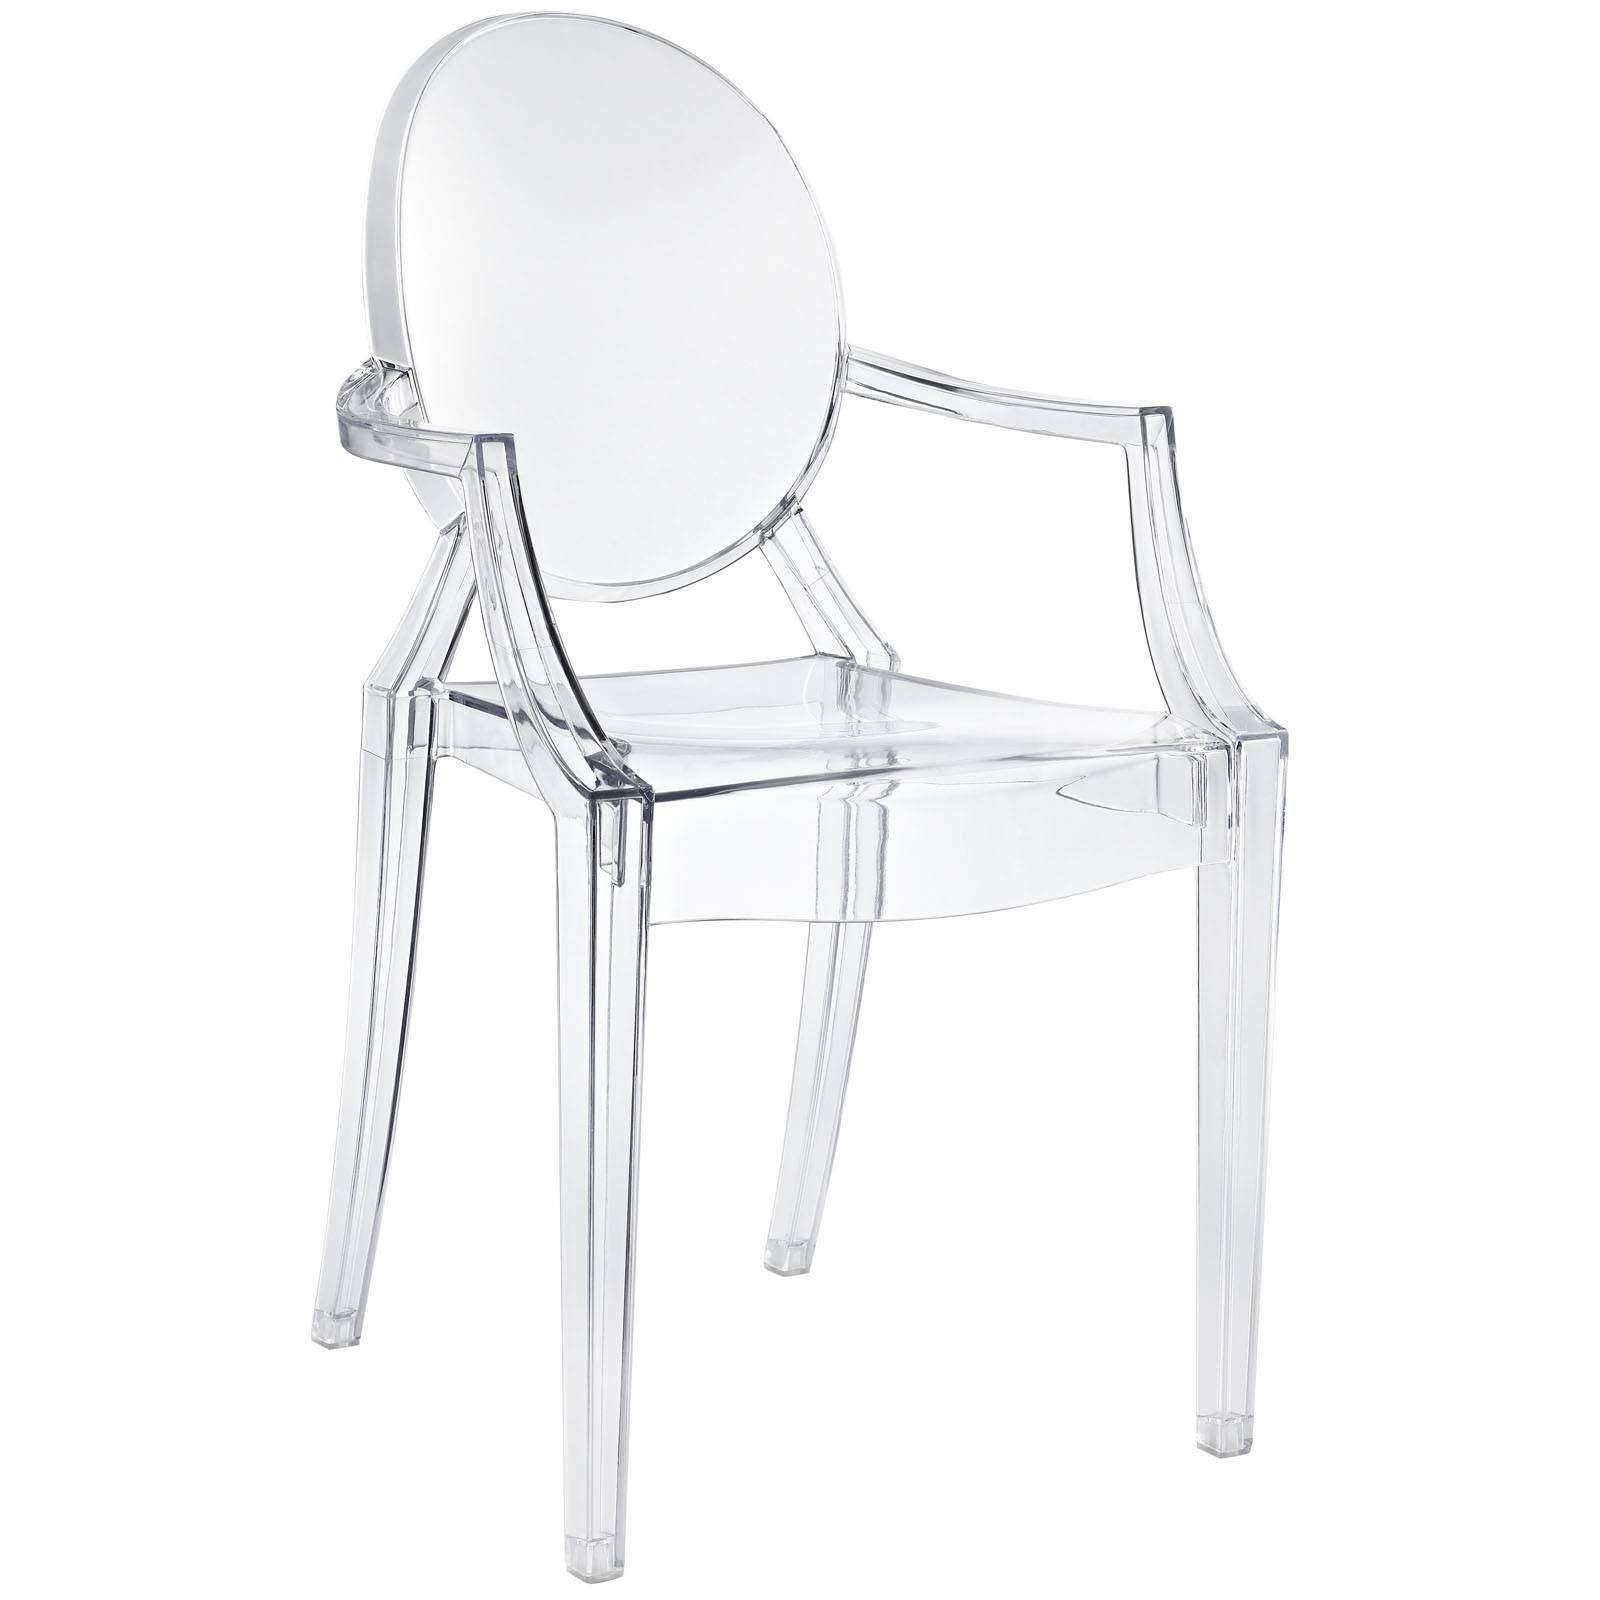 Philippe starck style louis ghost arm chair for Chaise ghost kartell